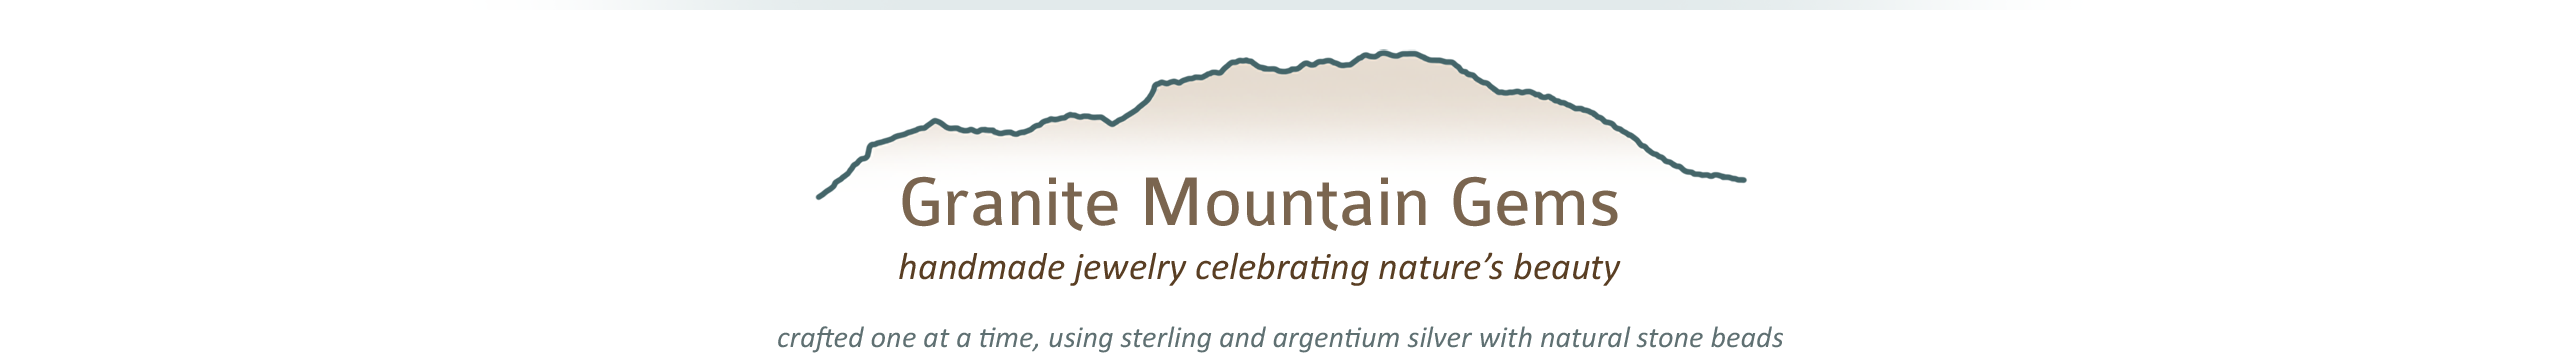 Granite Mountain Gems handmade jewelry celebrating nature's beauty crafted one at a time using sterling and argentium silver with natural stone beads